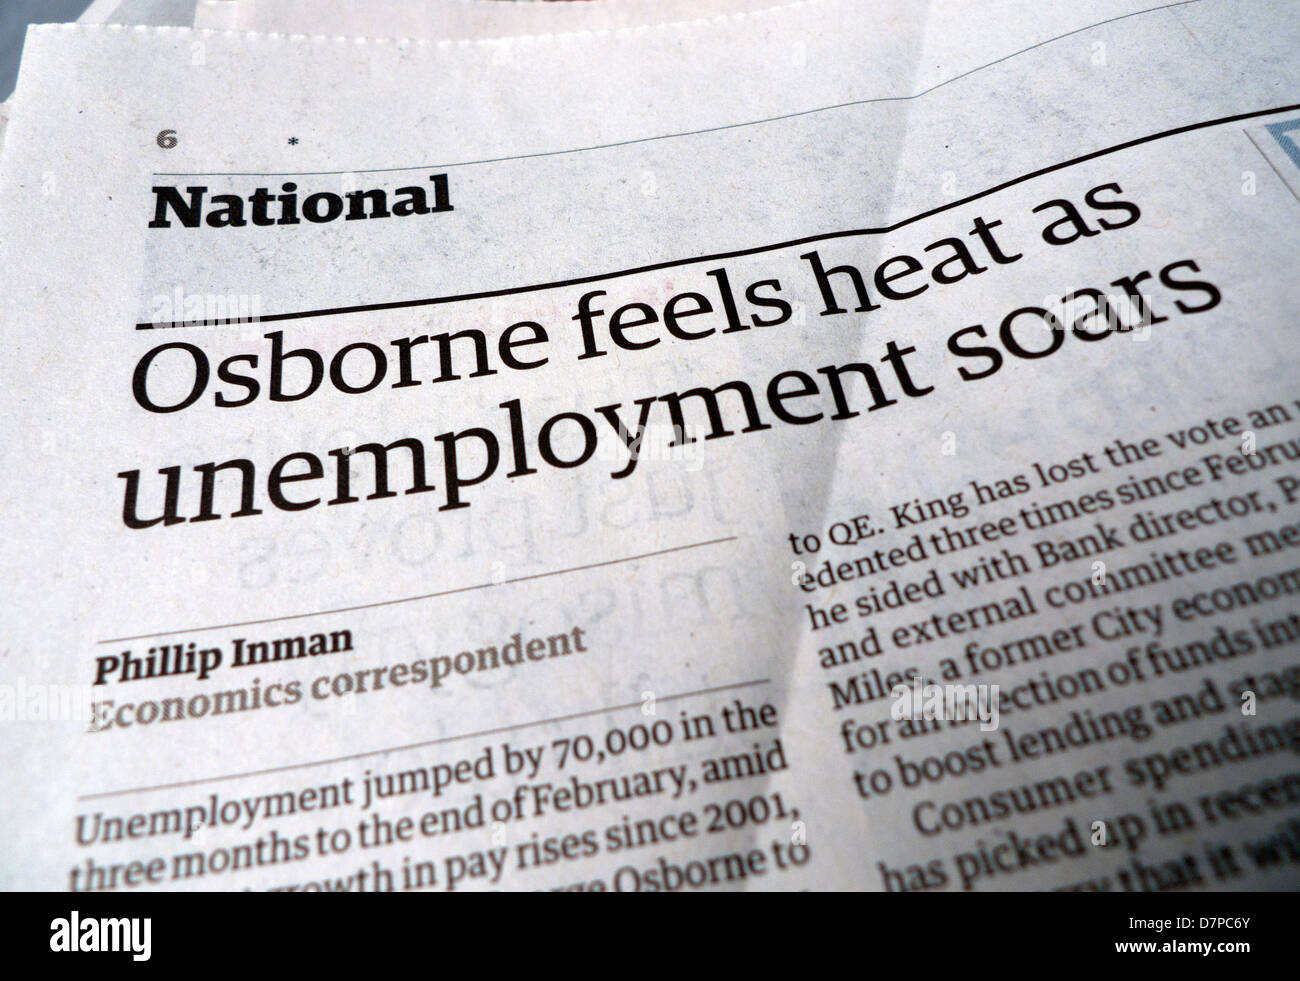 Guardian newspaper headline 'Osborne feels heat as unemployment soars' April 2013 - Stock Image